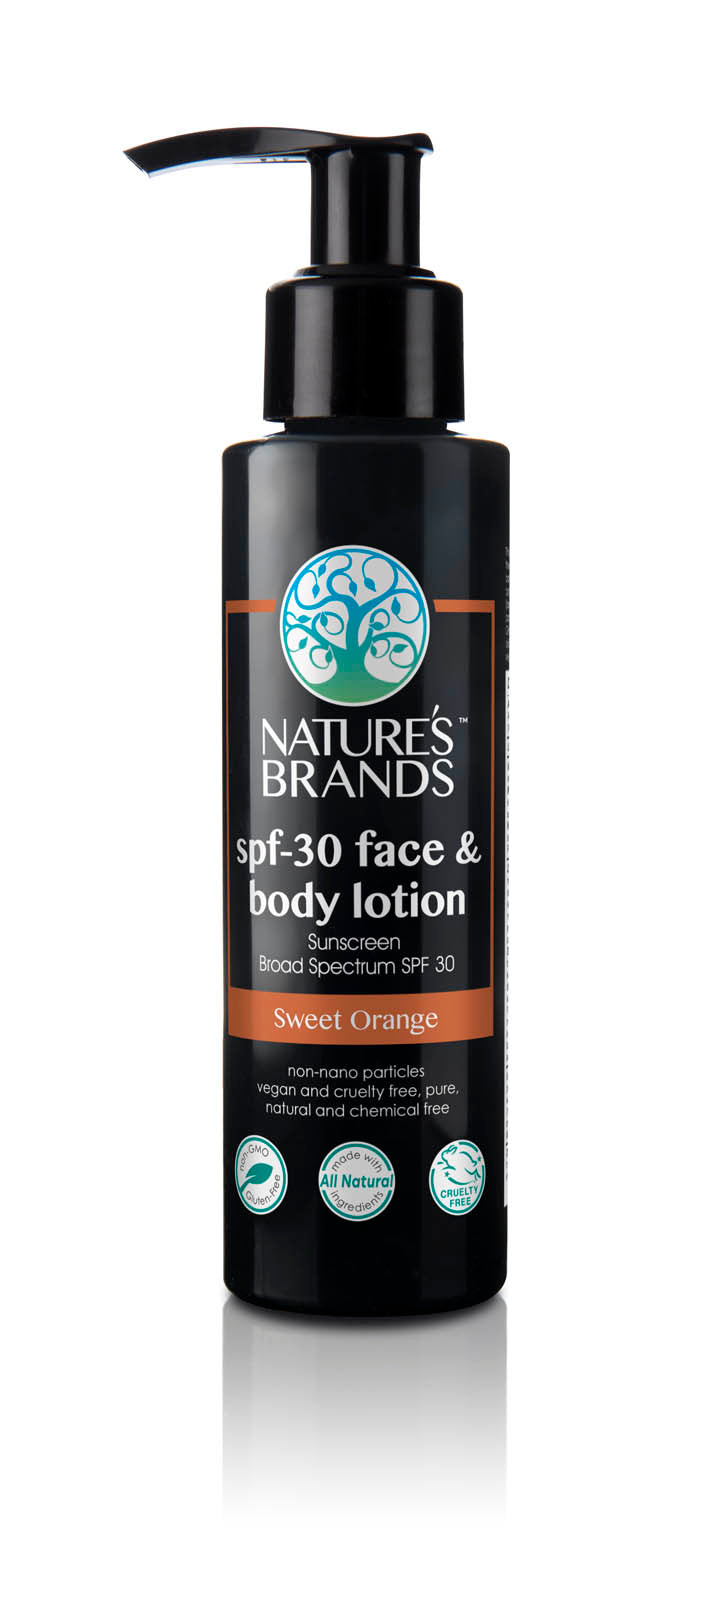 Herbal Choice Mari Natural SPF 30 Face & Body Lotion - Herbal Choice Mari Natural SPF 30 Face & Body Lotion - Herbal Choice Mari Natural SPF 30 Face & Body Lotion